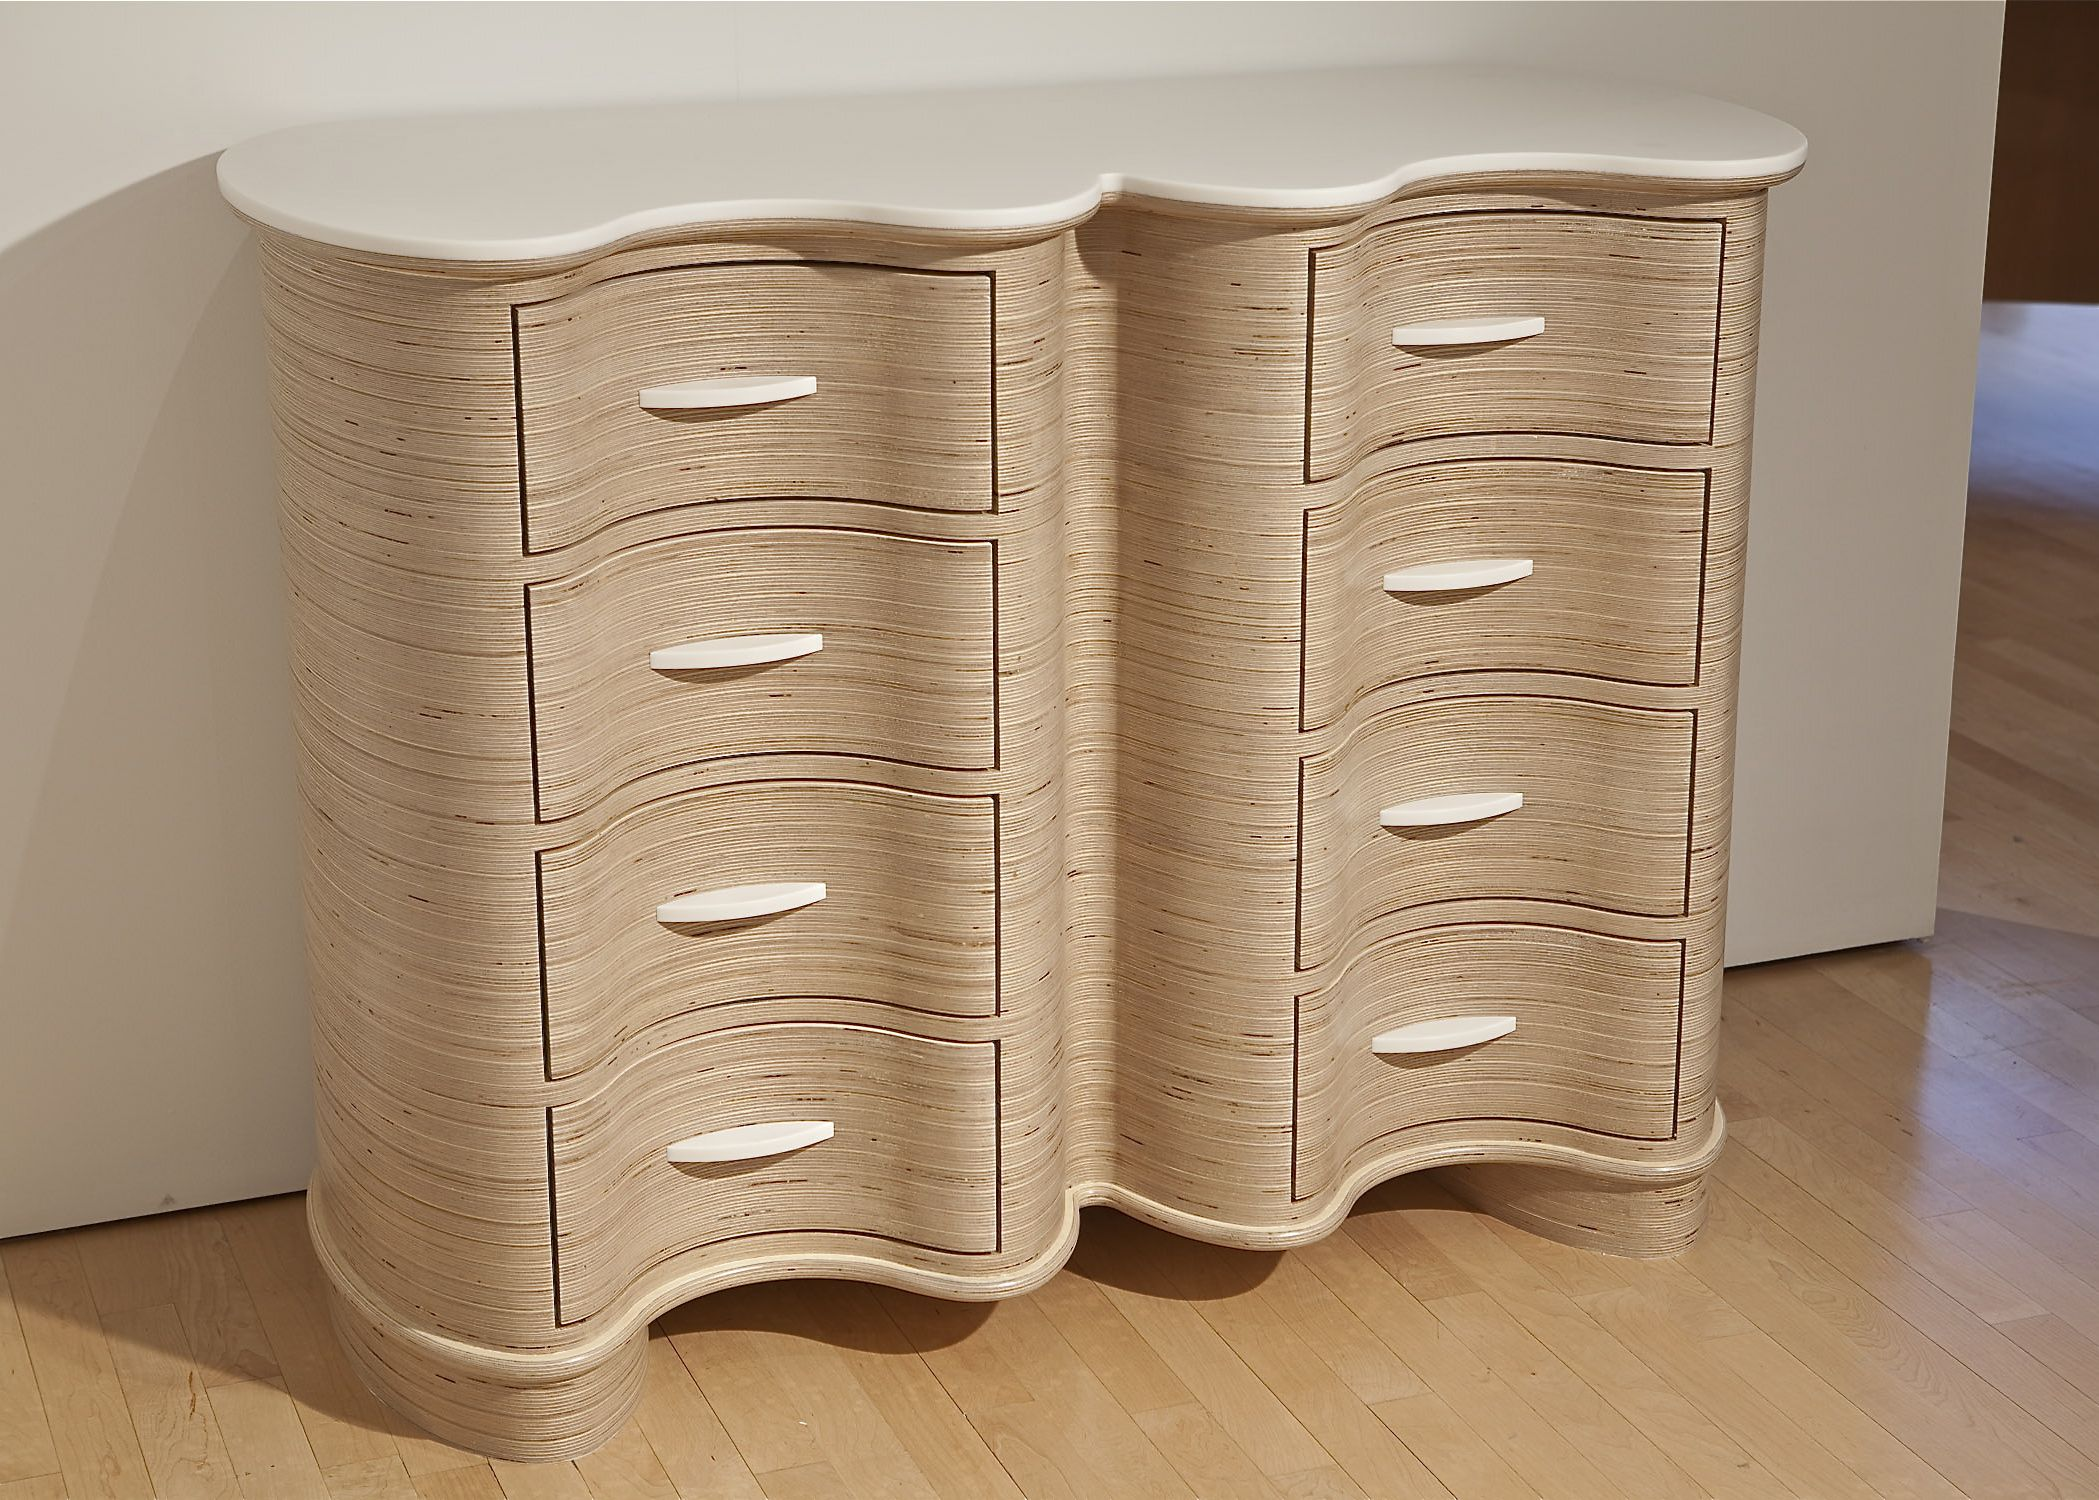 This chest of drawers display is fabricated from Baltic Birch ...